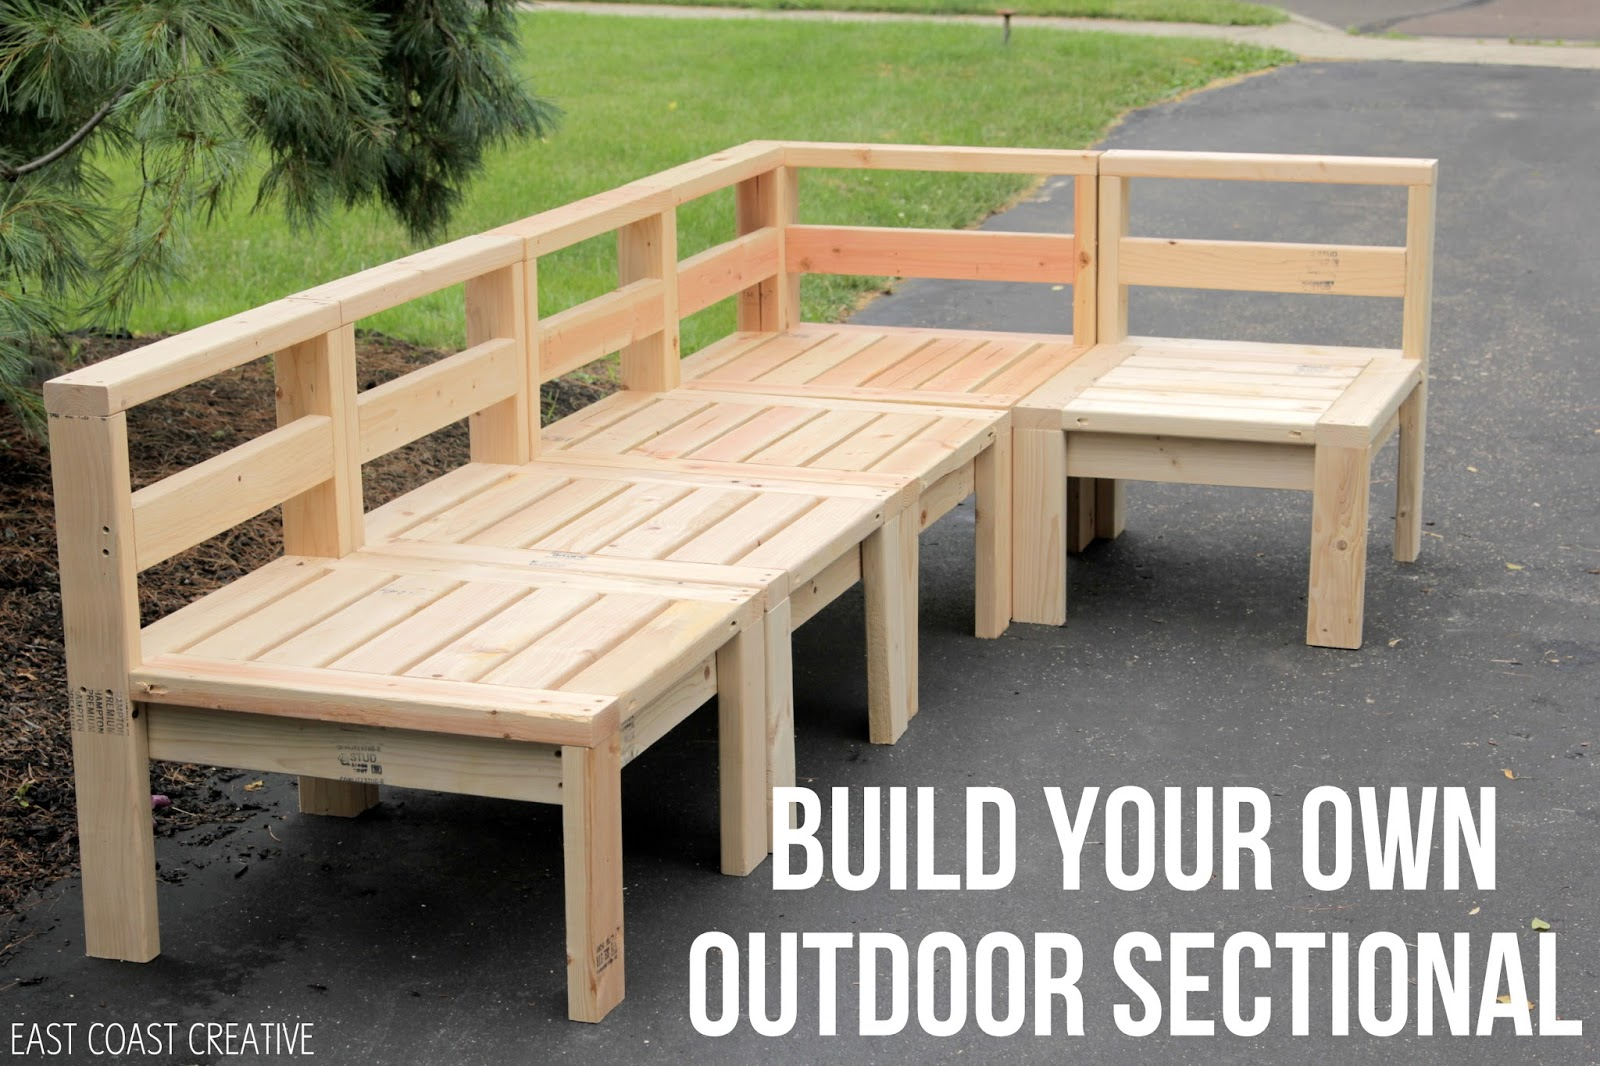 How to Build an Outdoor Sectional  Knock It Off. How to Build an Outdoor Sectional  Knock It Off    East Coast